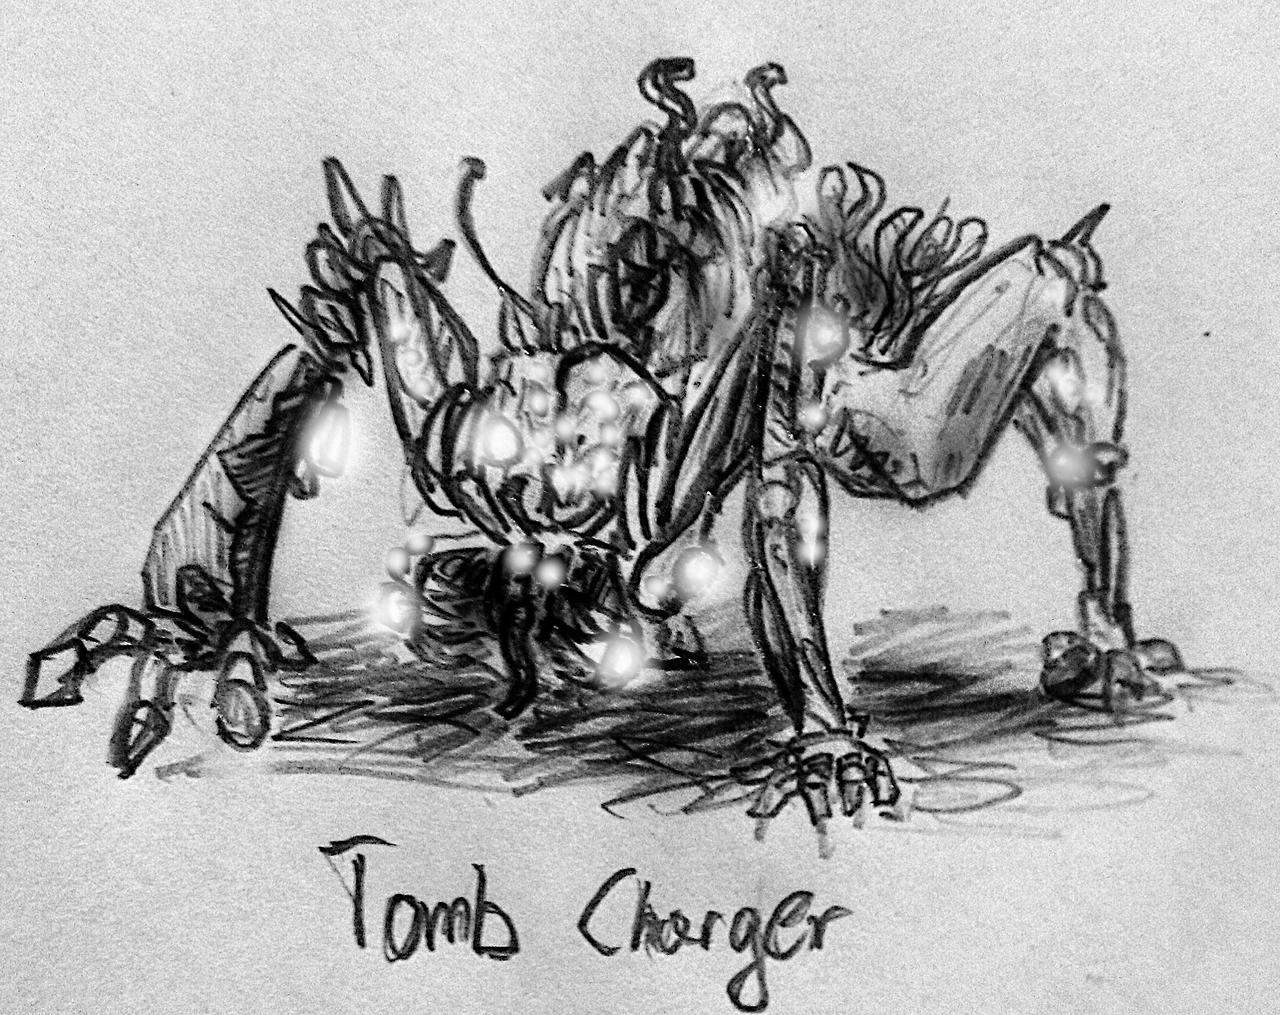 tomb_charger_by_huginthecrowda_ddj1rwe-f